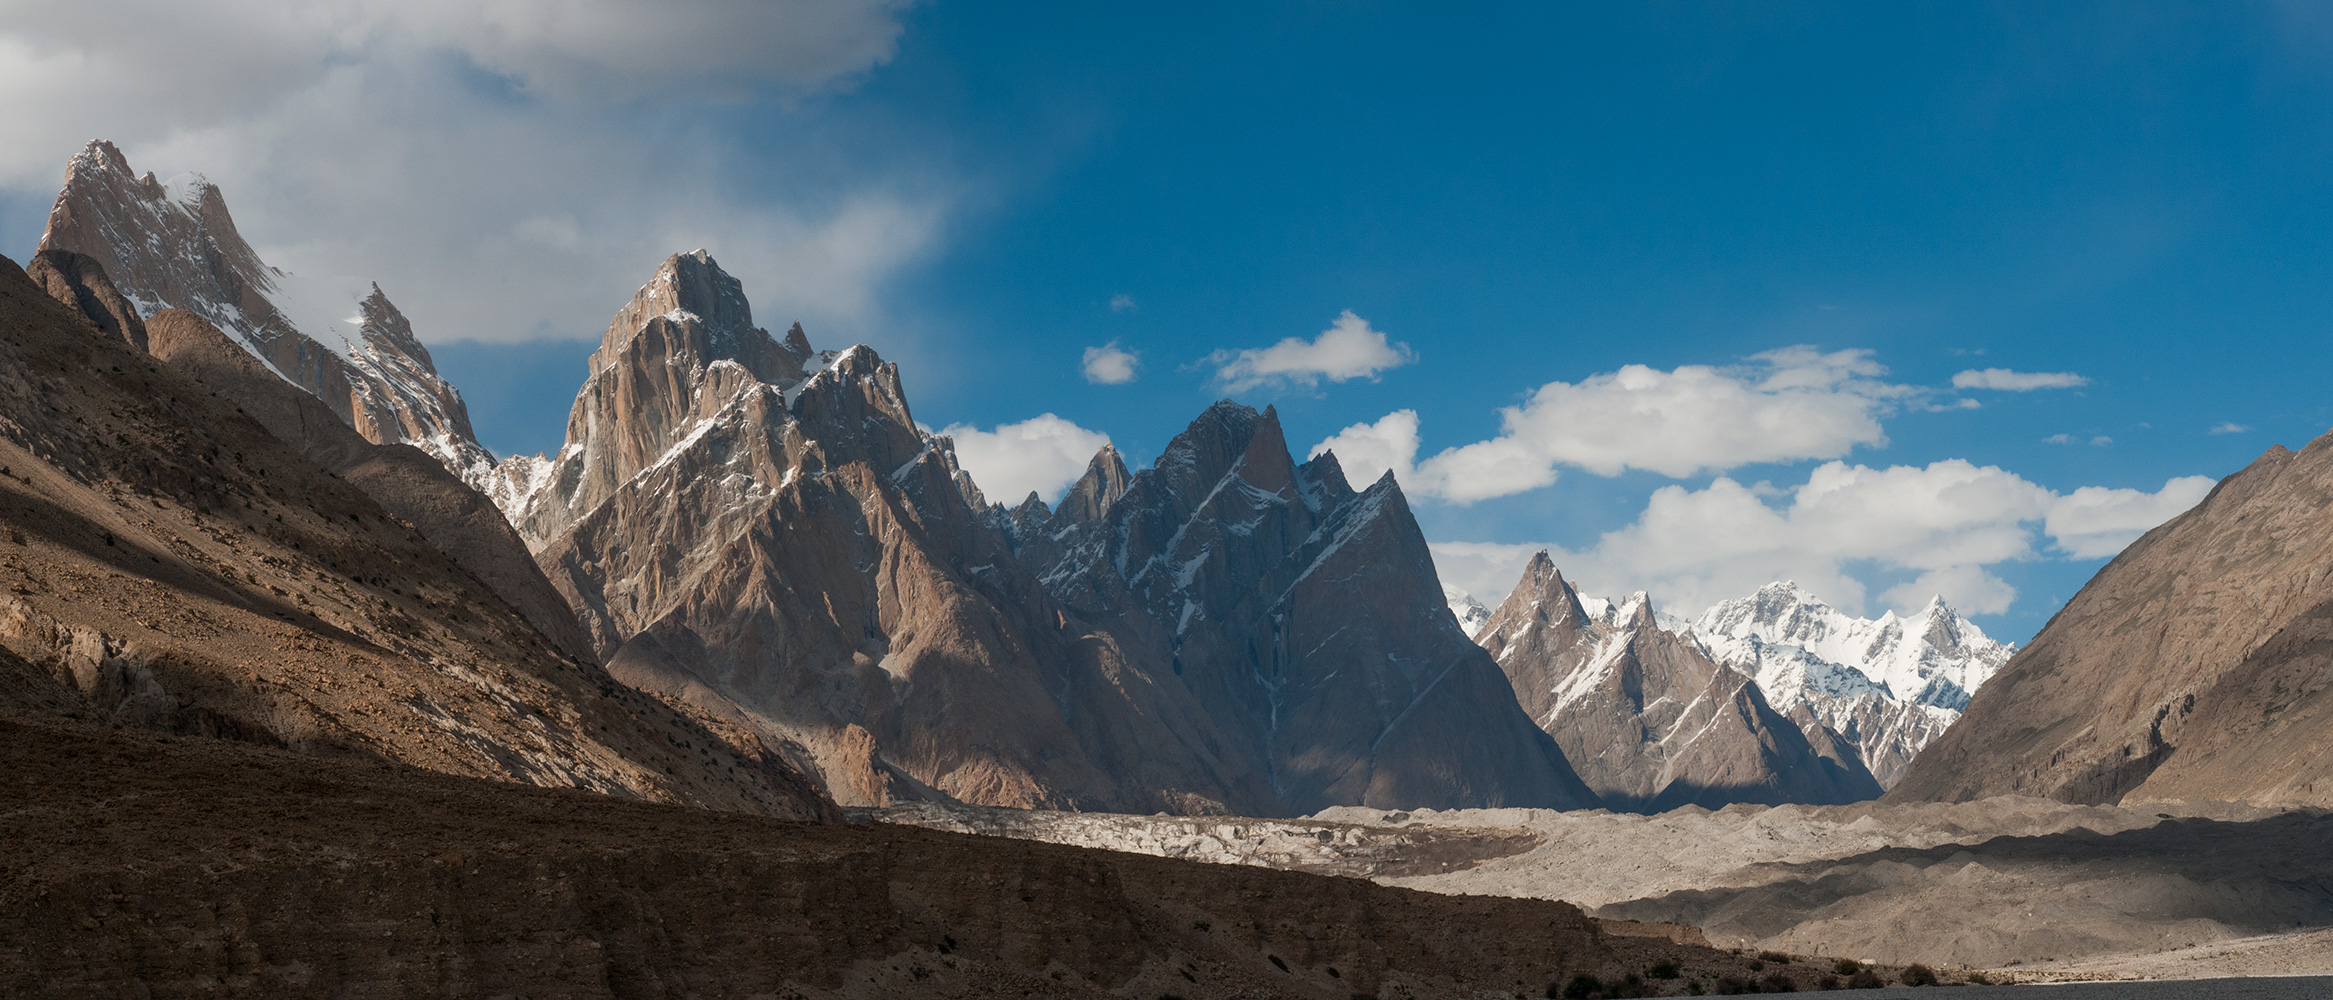 A stitched panorama of two images, taken from the valley floor below Paiju camp. Looking up valley to the Trango Towers, Cathedral Spires and the snout of the Baltoro glacier